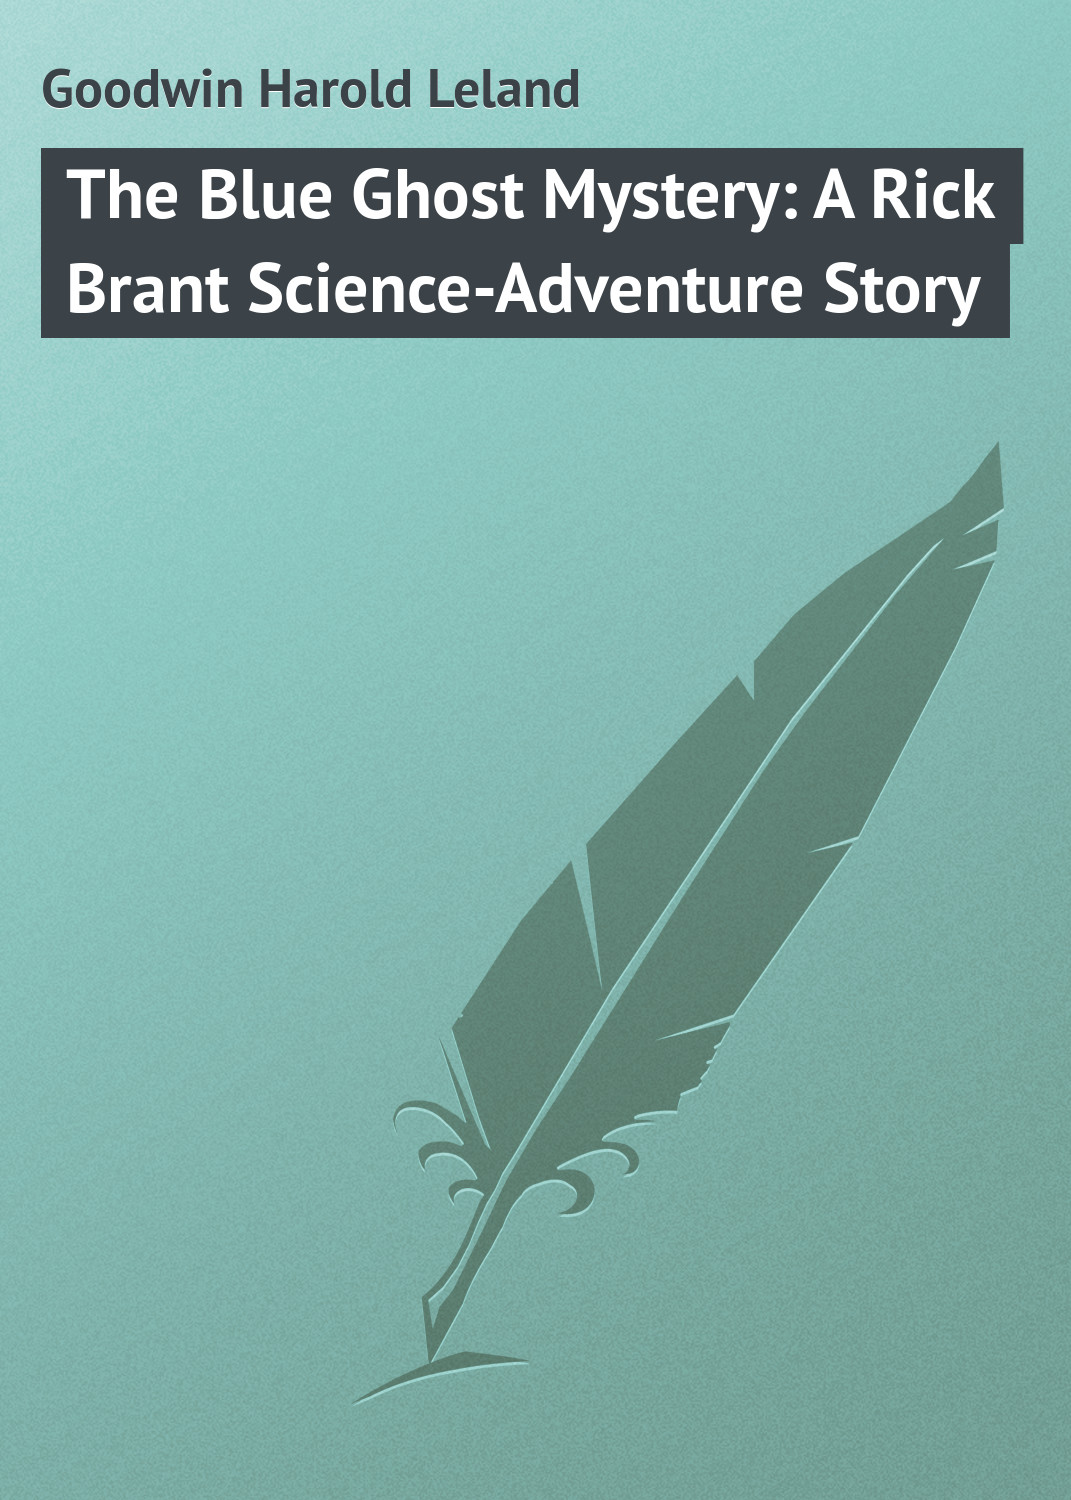 Goodwin Harold Leland The Blue Ghost Mystery: A Rick Brant Science-Adventure Story goodwin harold leland the blue ghost mystery a rick brant science adventure story